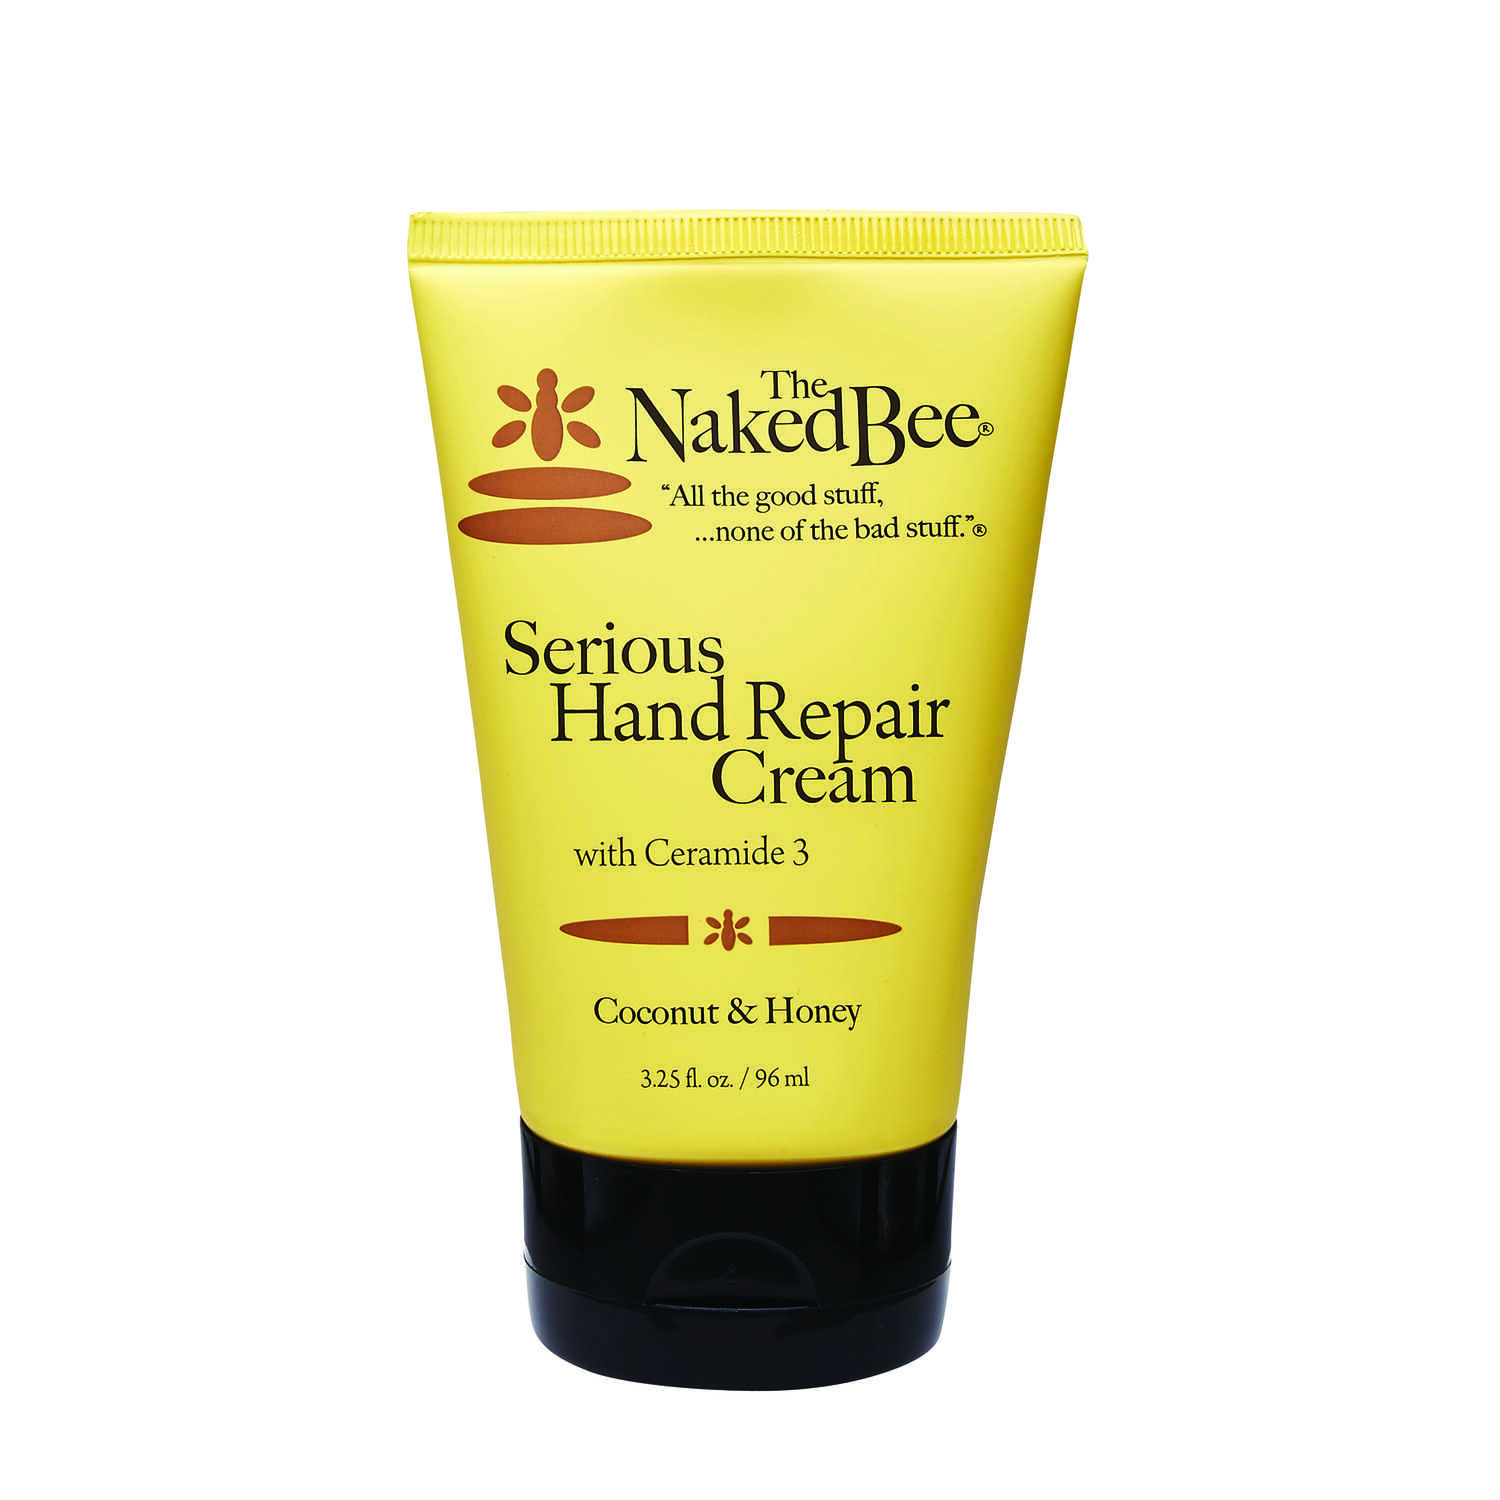 The Naked Bee  3.25 oz. 1 pk Hand Repair Cream  Coconut and Honey Scent